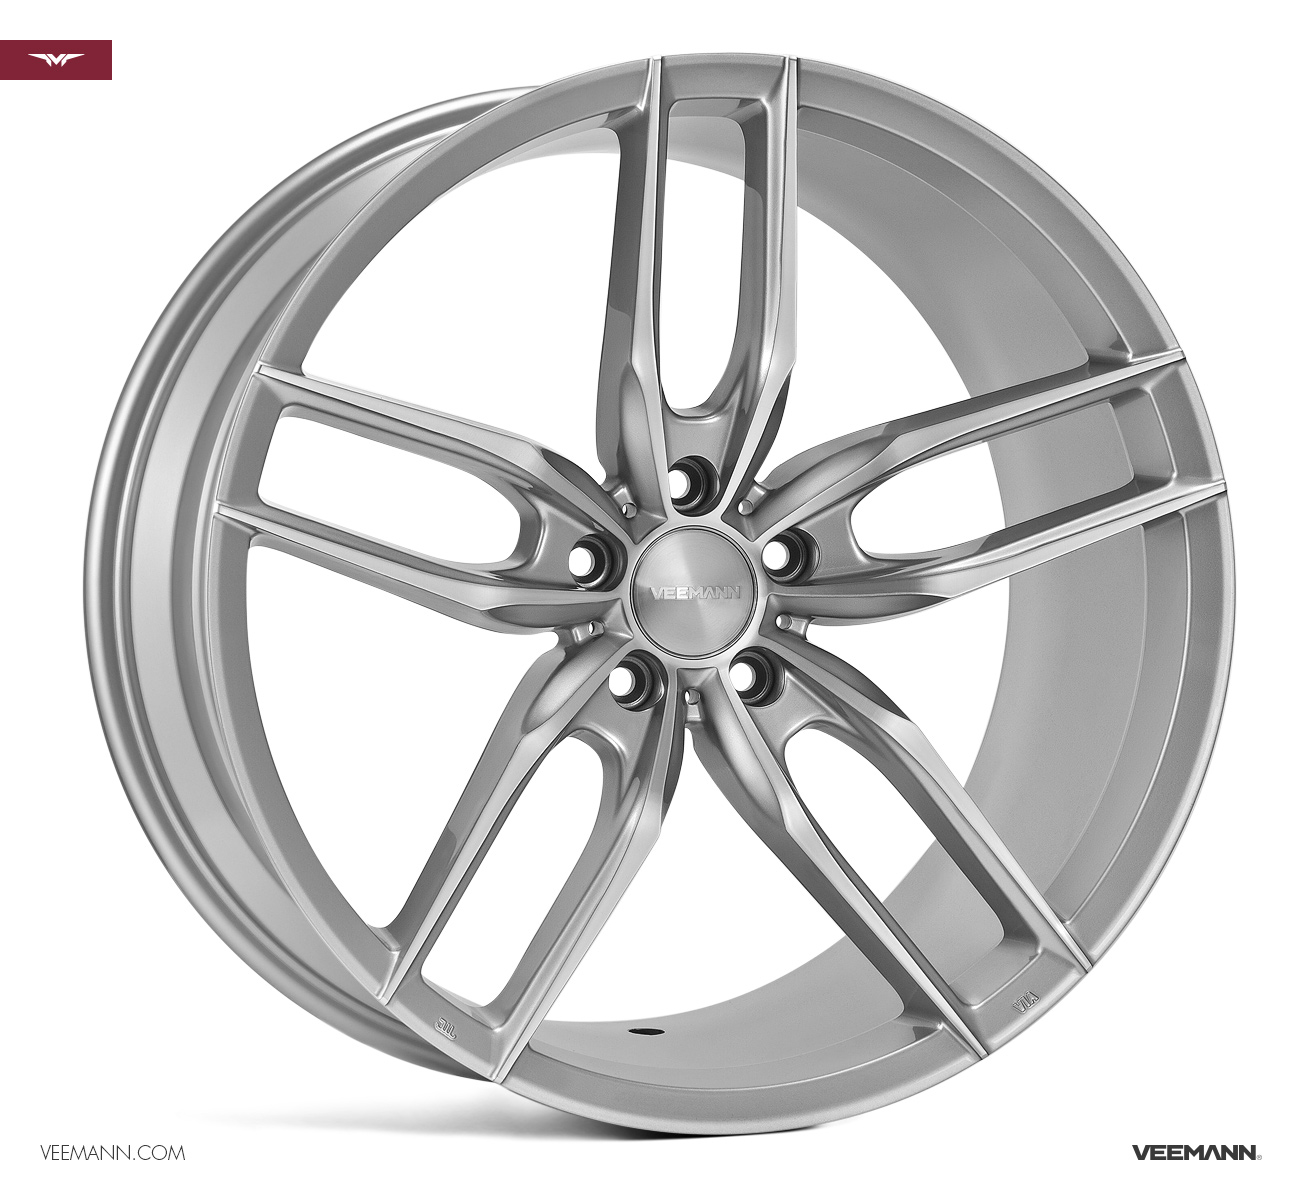 "NEW 22"" VEEMANN V-FS28 ALLOY WHEELS IN SILVER WITH POLISHED FACE WITH DEEPER CONCAVE 10.5"" REARS"